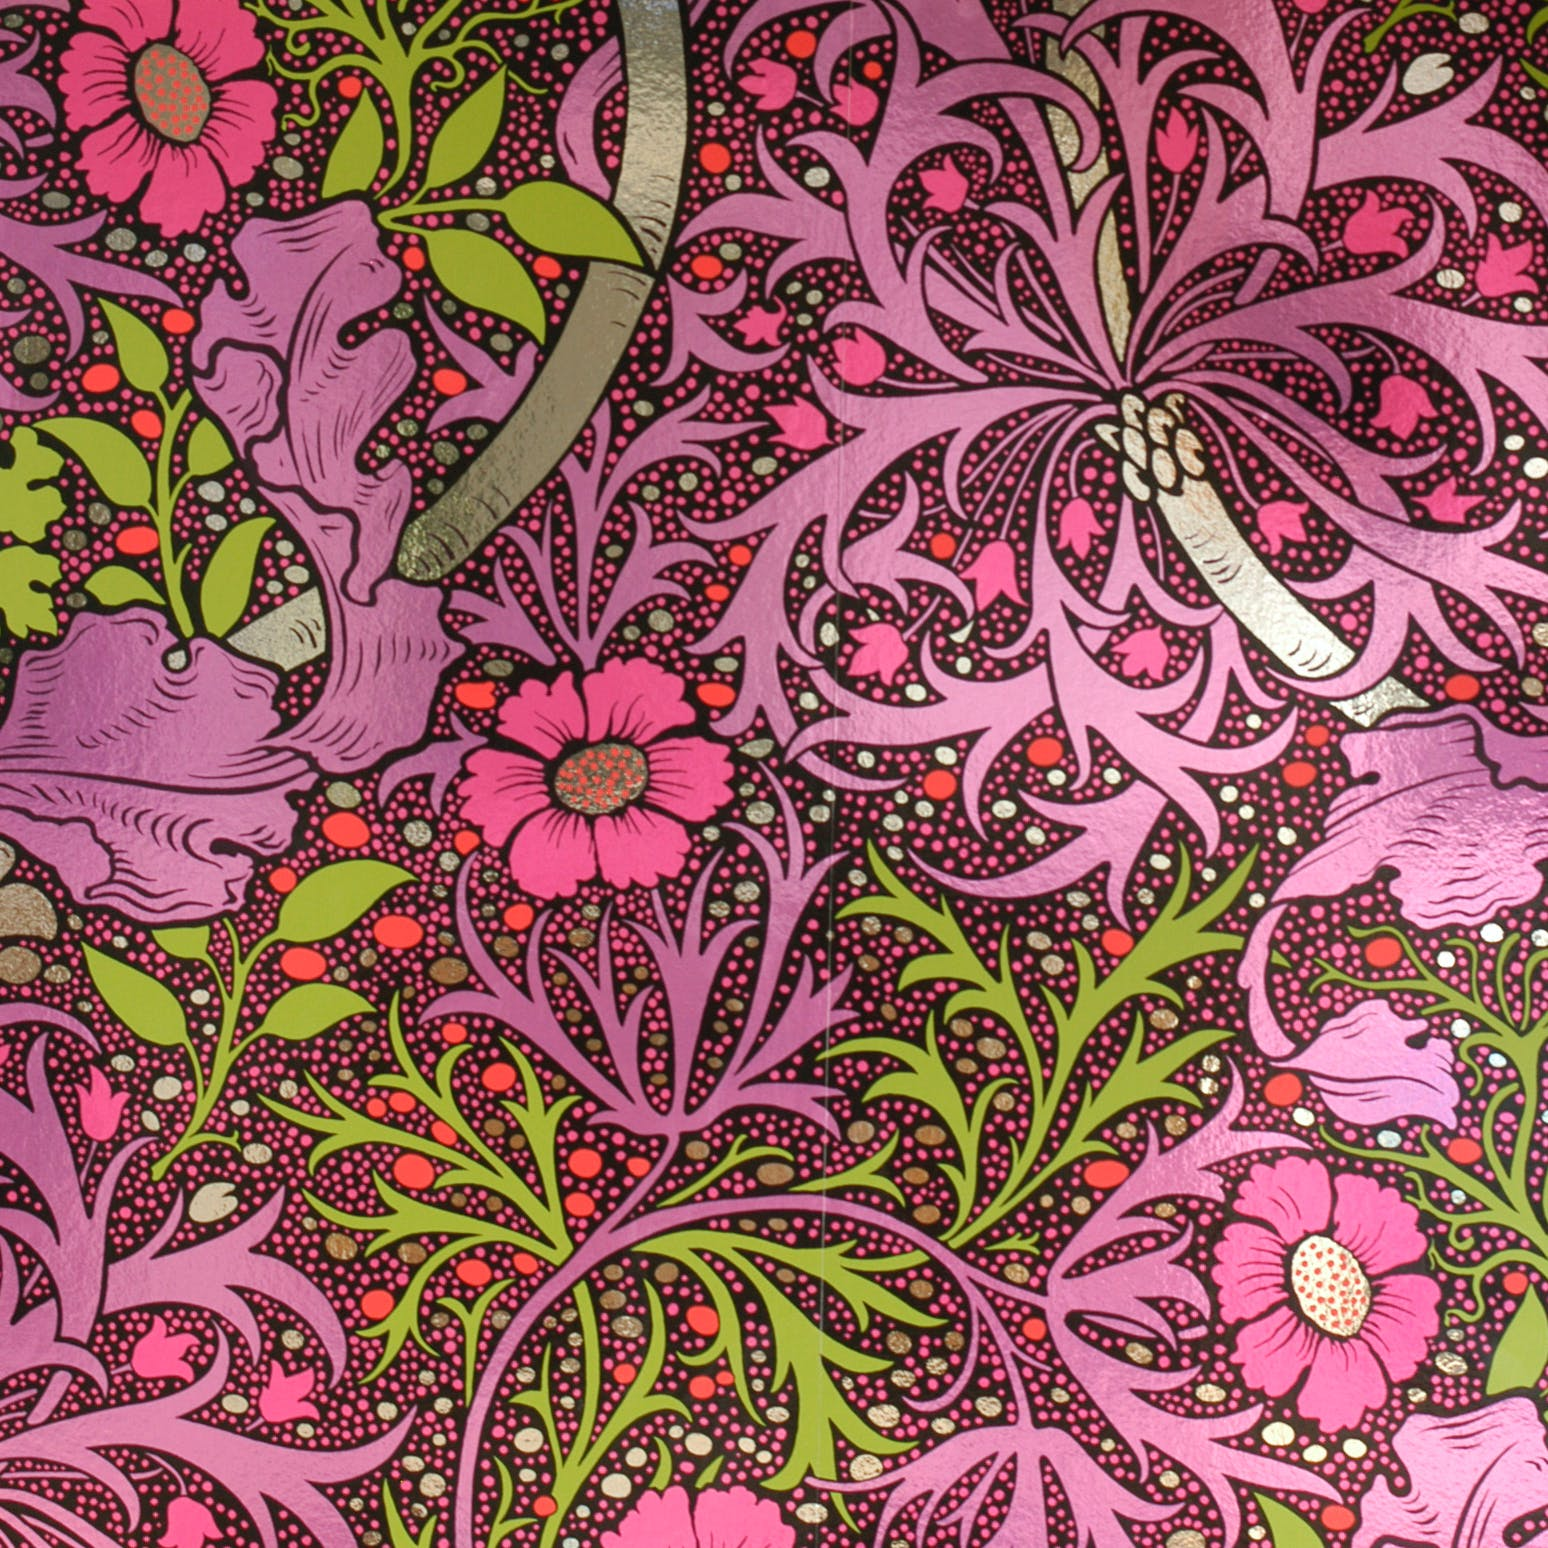 Bright pink and green floral wallpaper sample with slight reflective sheen